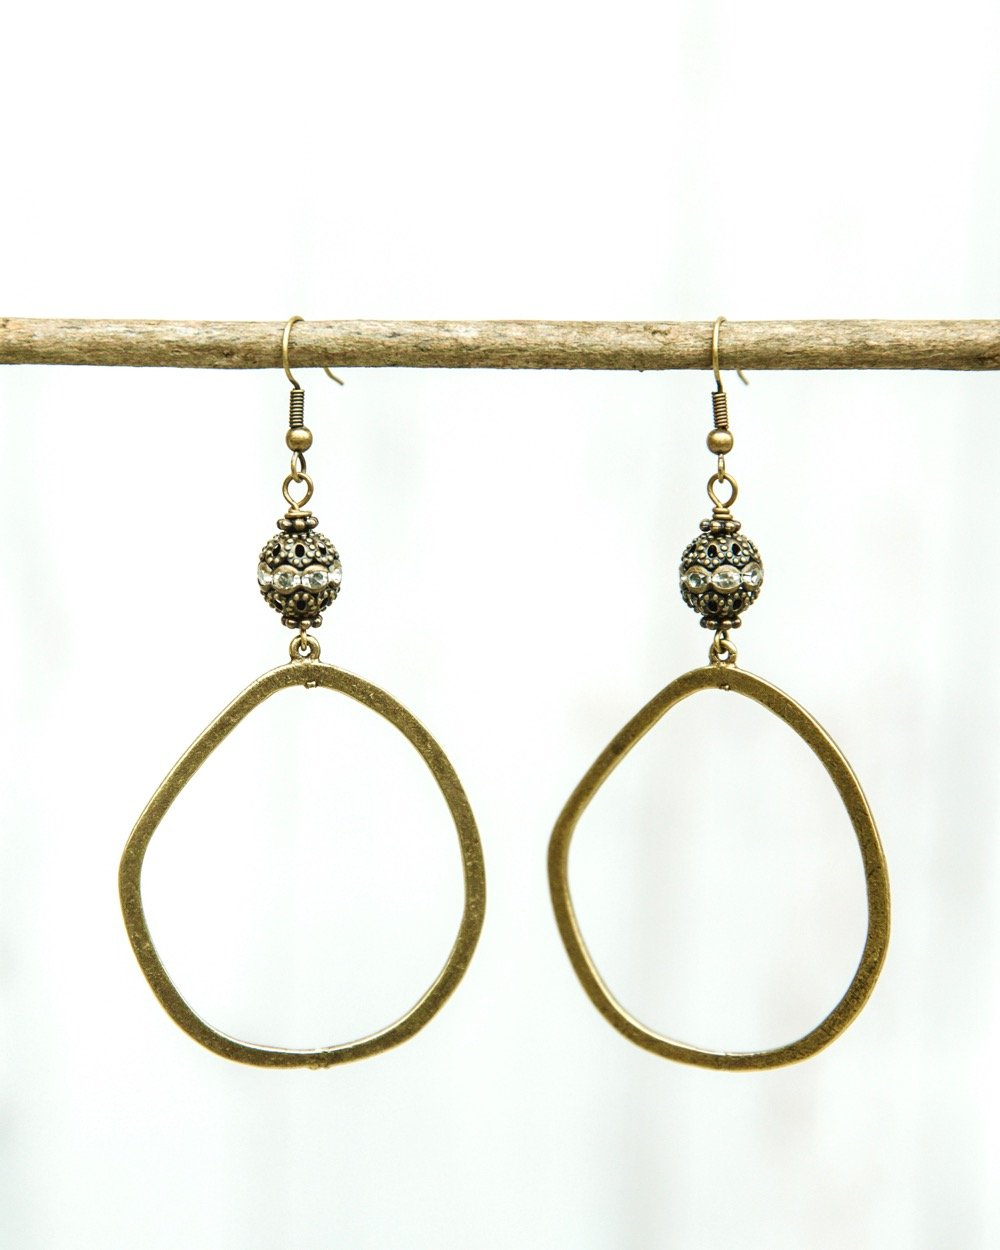 Large Bling Hoop Earrings